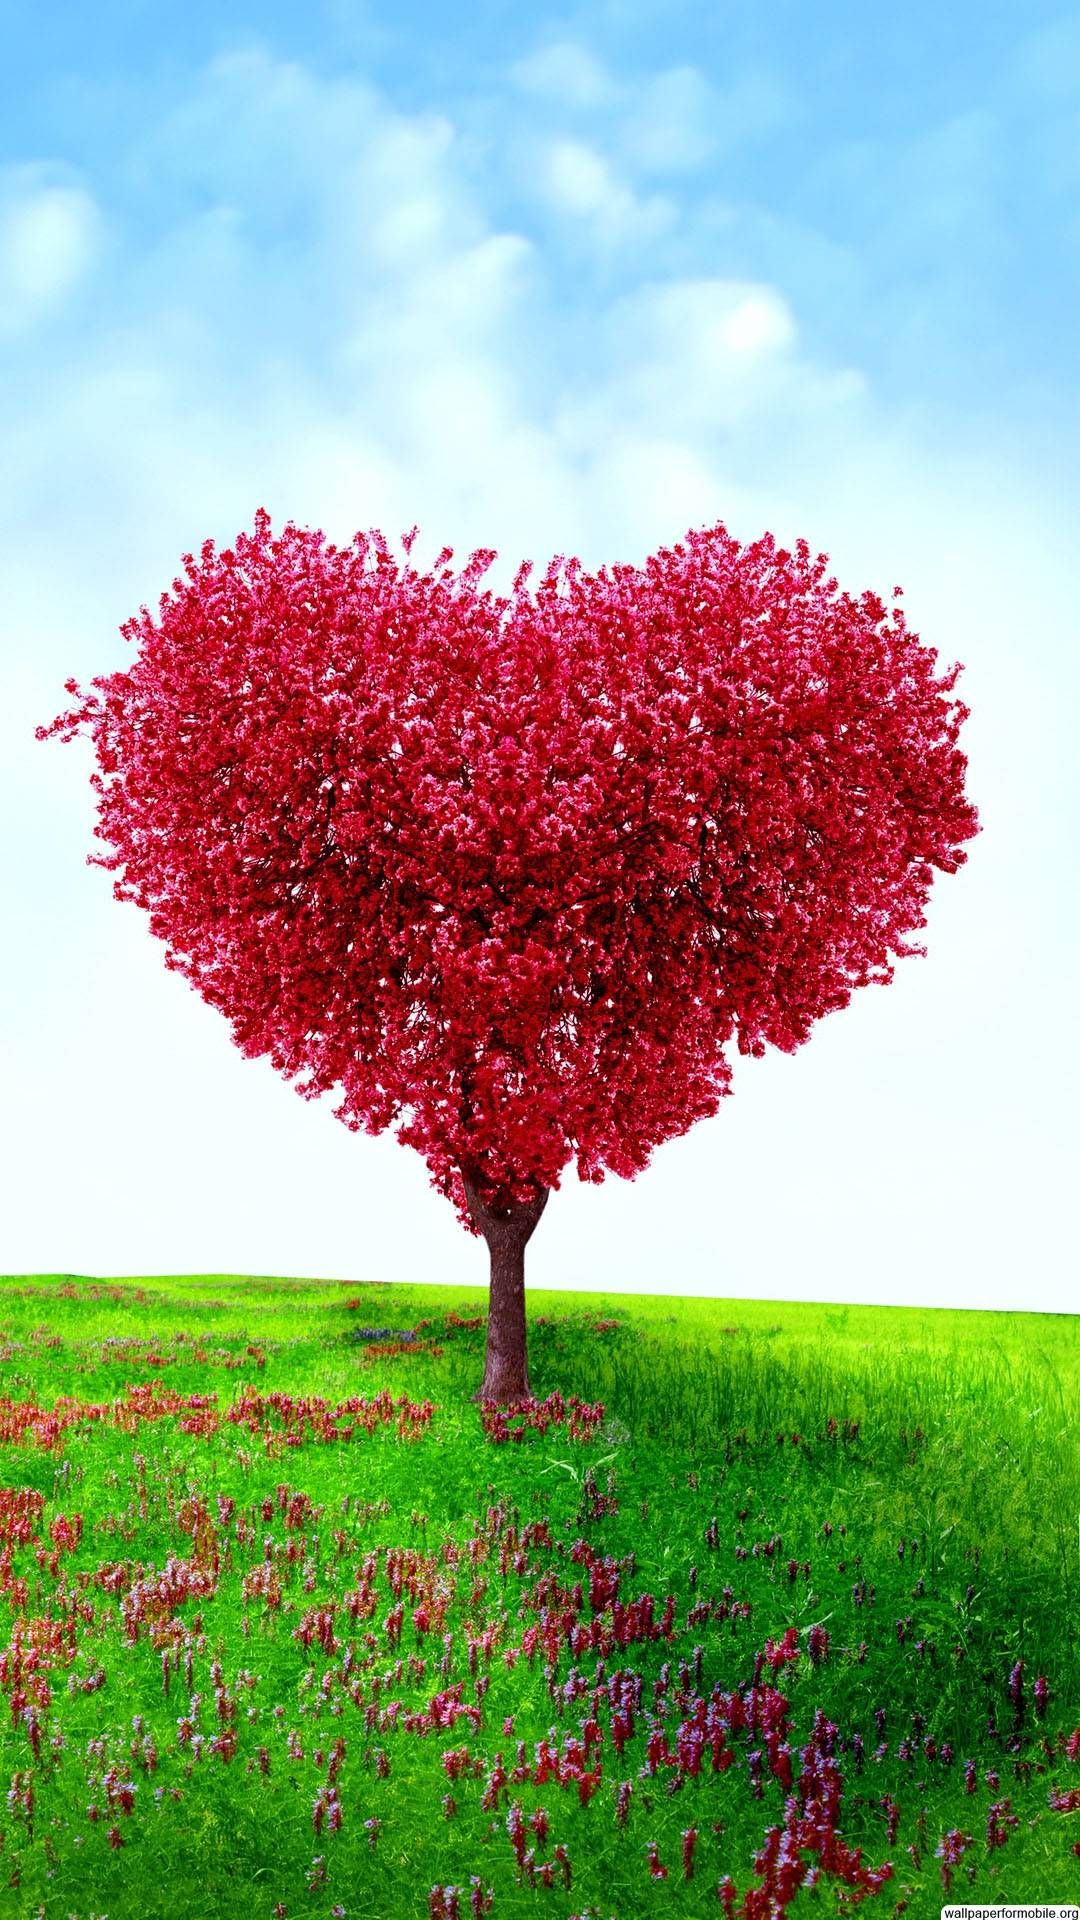 Http Wallpaperformobile Org 7794 Valentines Wallpaper Free Download Html Valentines Wallpap With Images Valentines Wallpaper Hd Wallpaper Android Tree Canopy Wallpaper